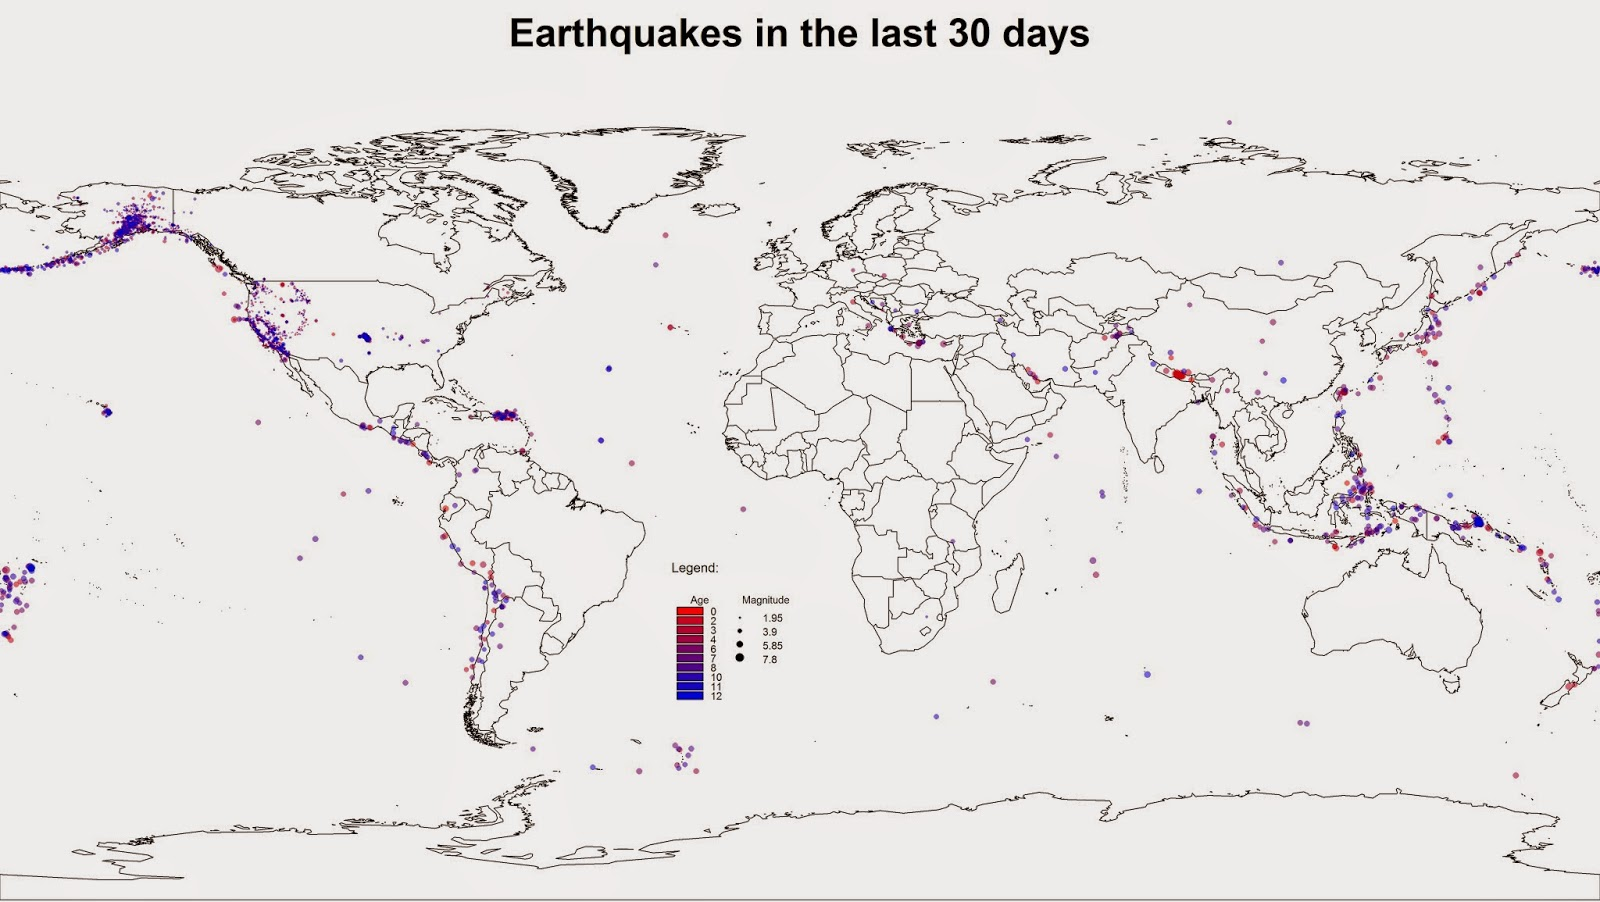 Downloading and Visualizing Seismic Events from USGS